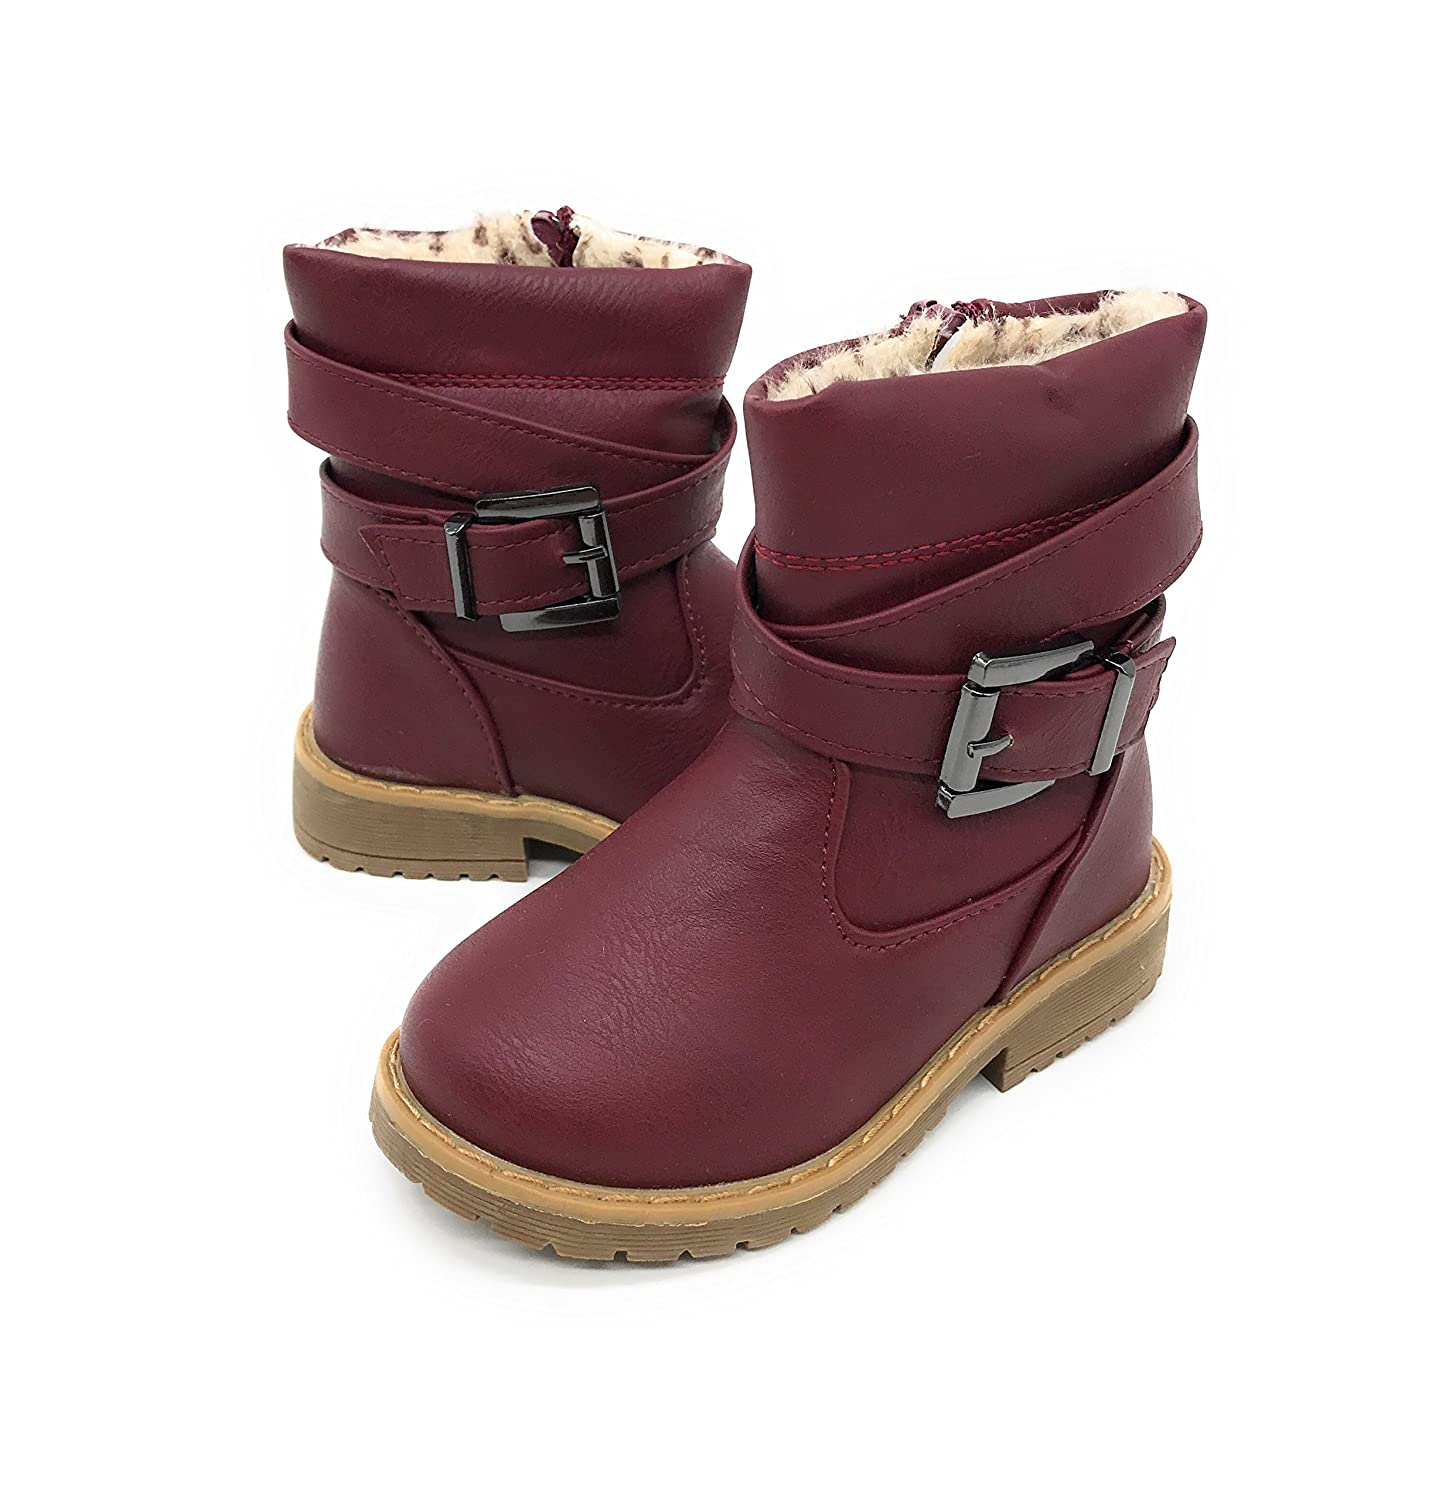 Blue Berry EASY21 Girls Fashion Cute Toddler//Infant Winter Snow Boots 4 M US Toddler, BURGUNDY12